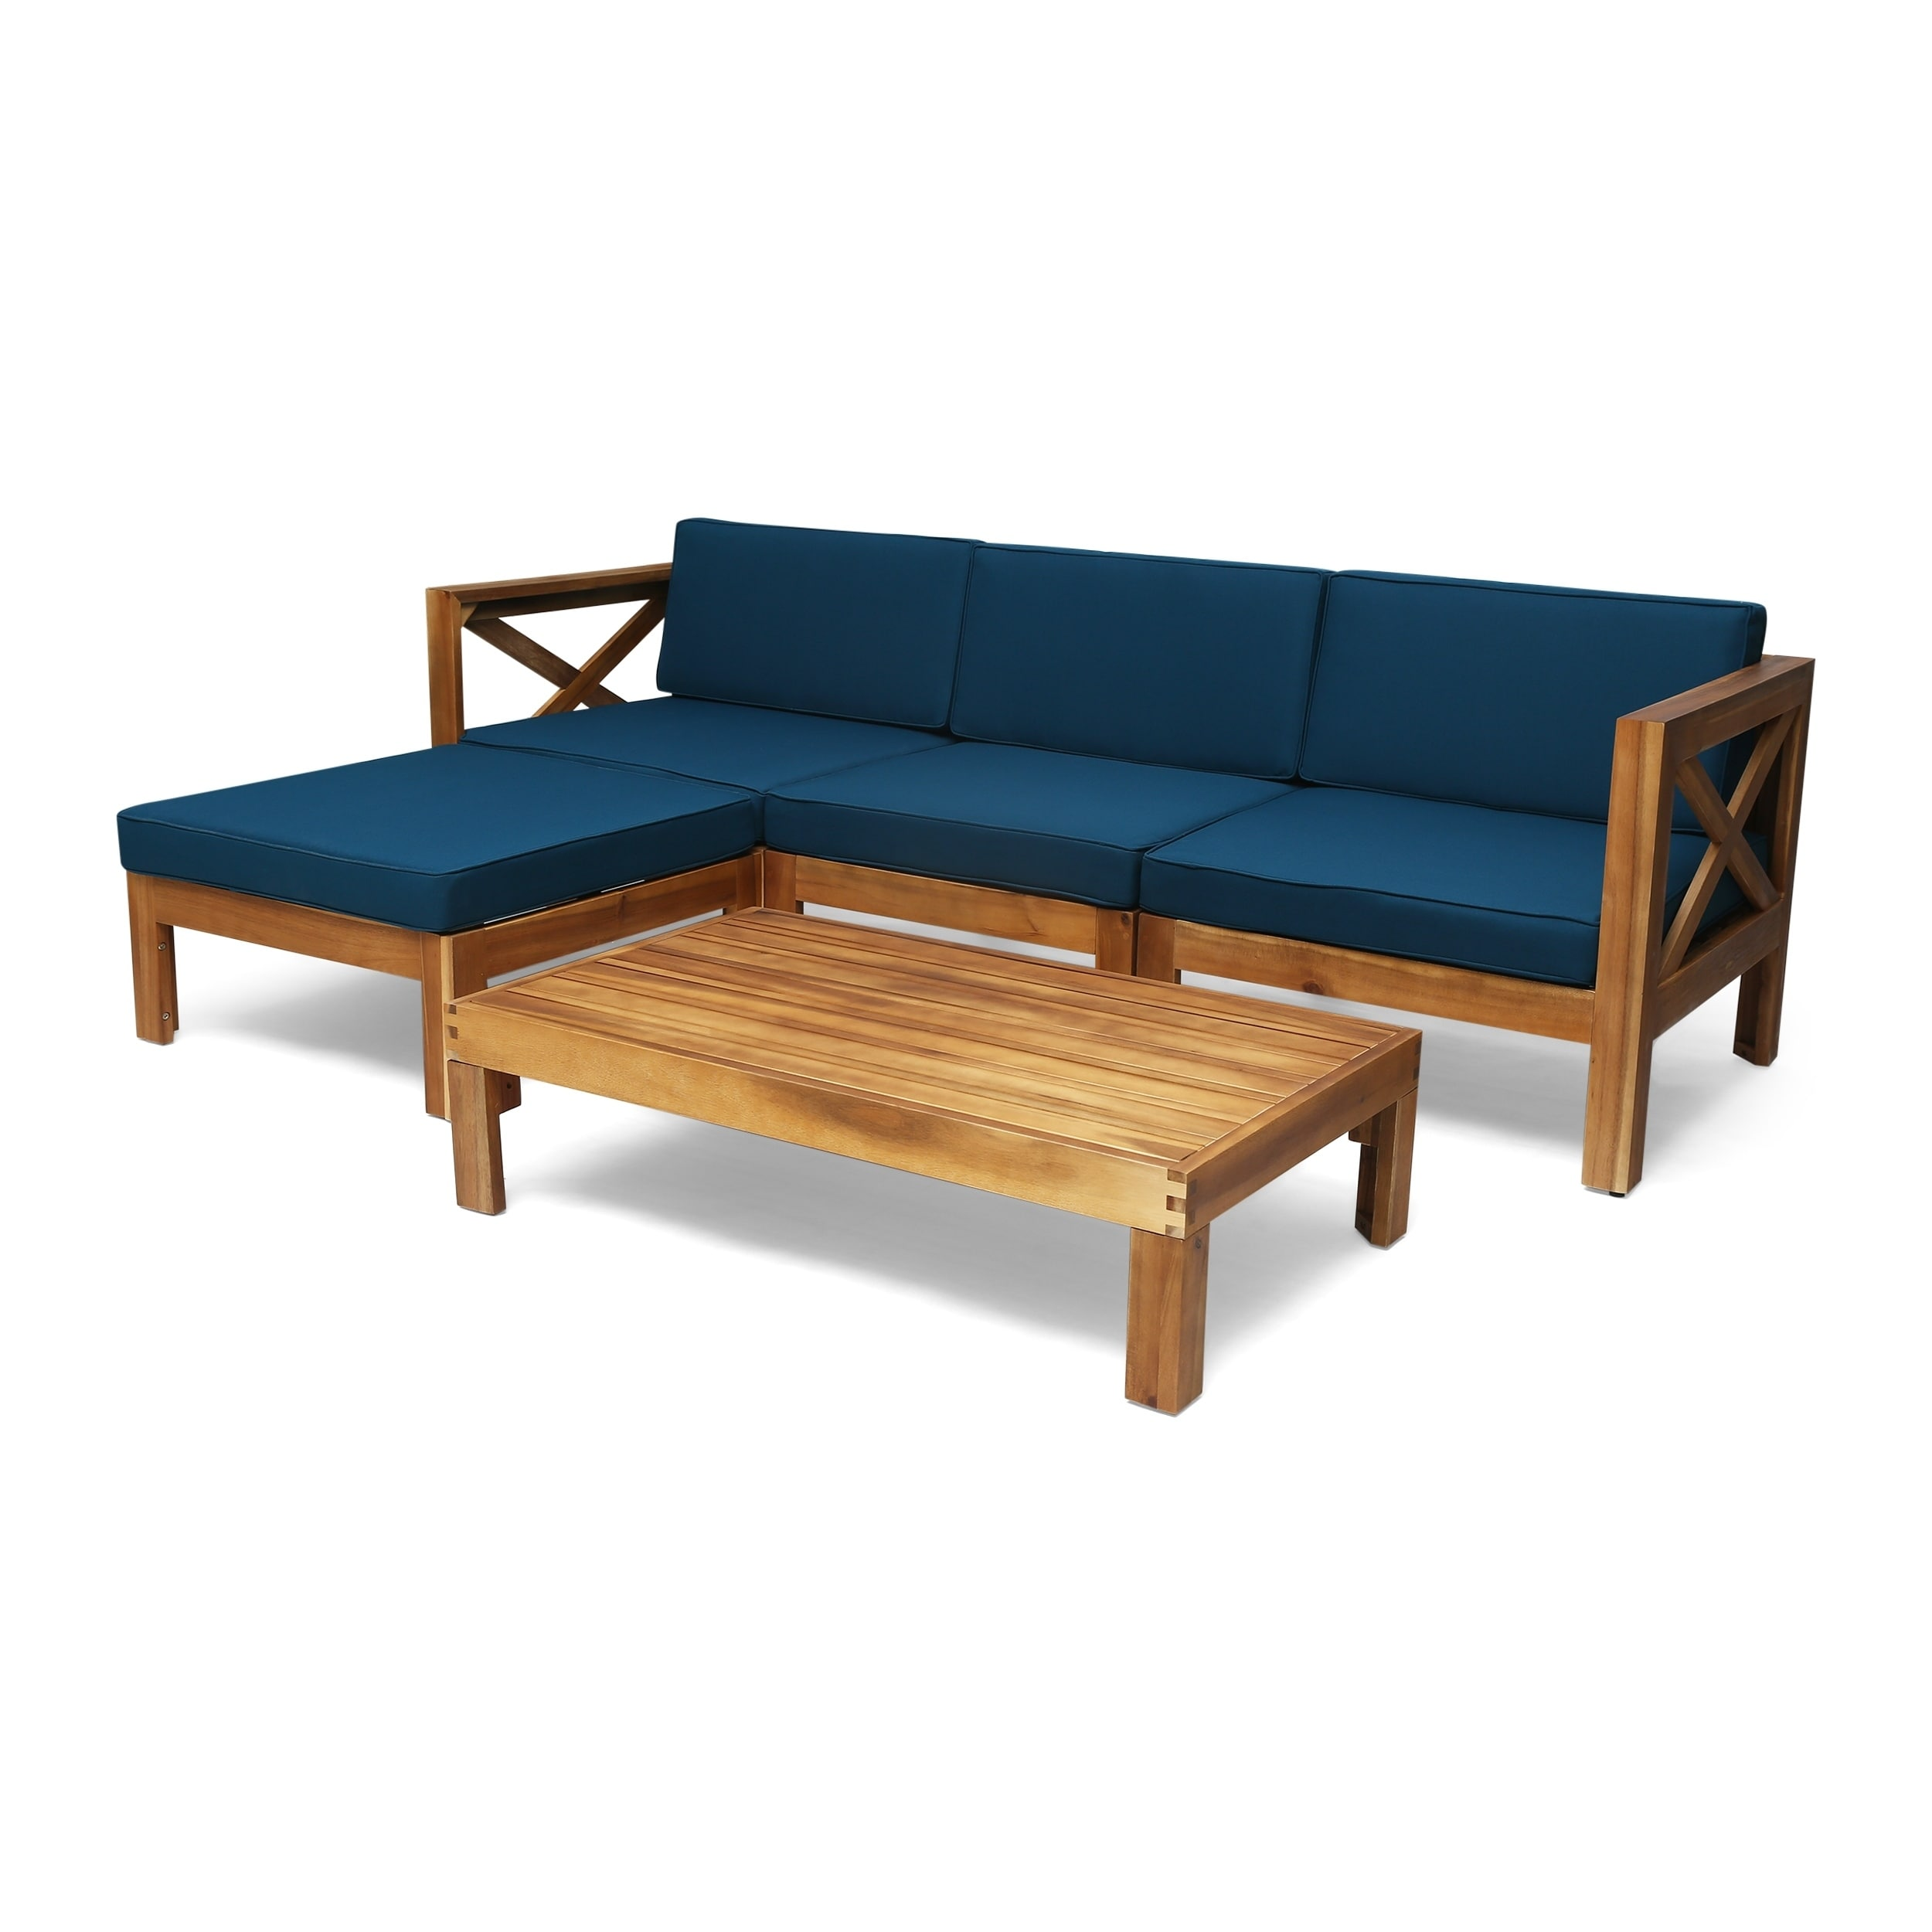 Christopher Knight Home Alcove Outdoor Acacia Wood 5 Piece Sofa Set by